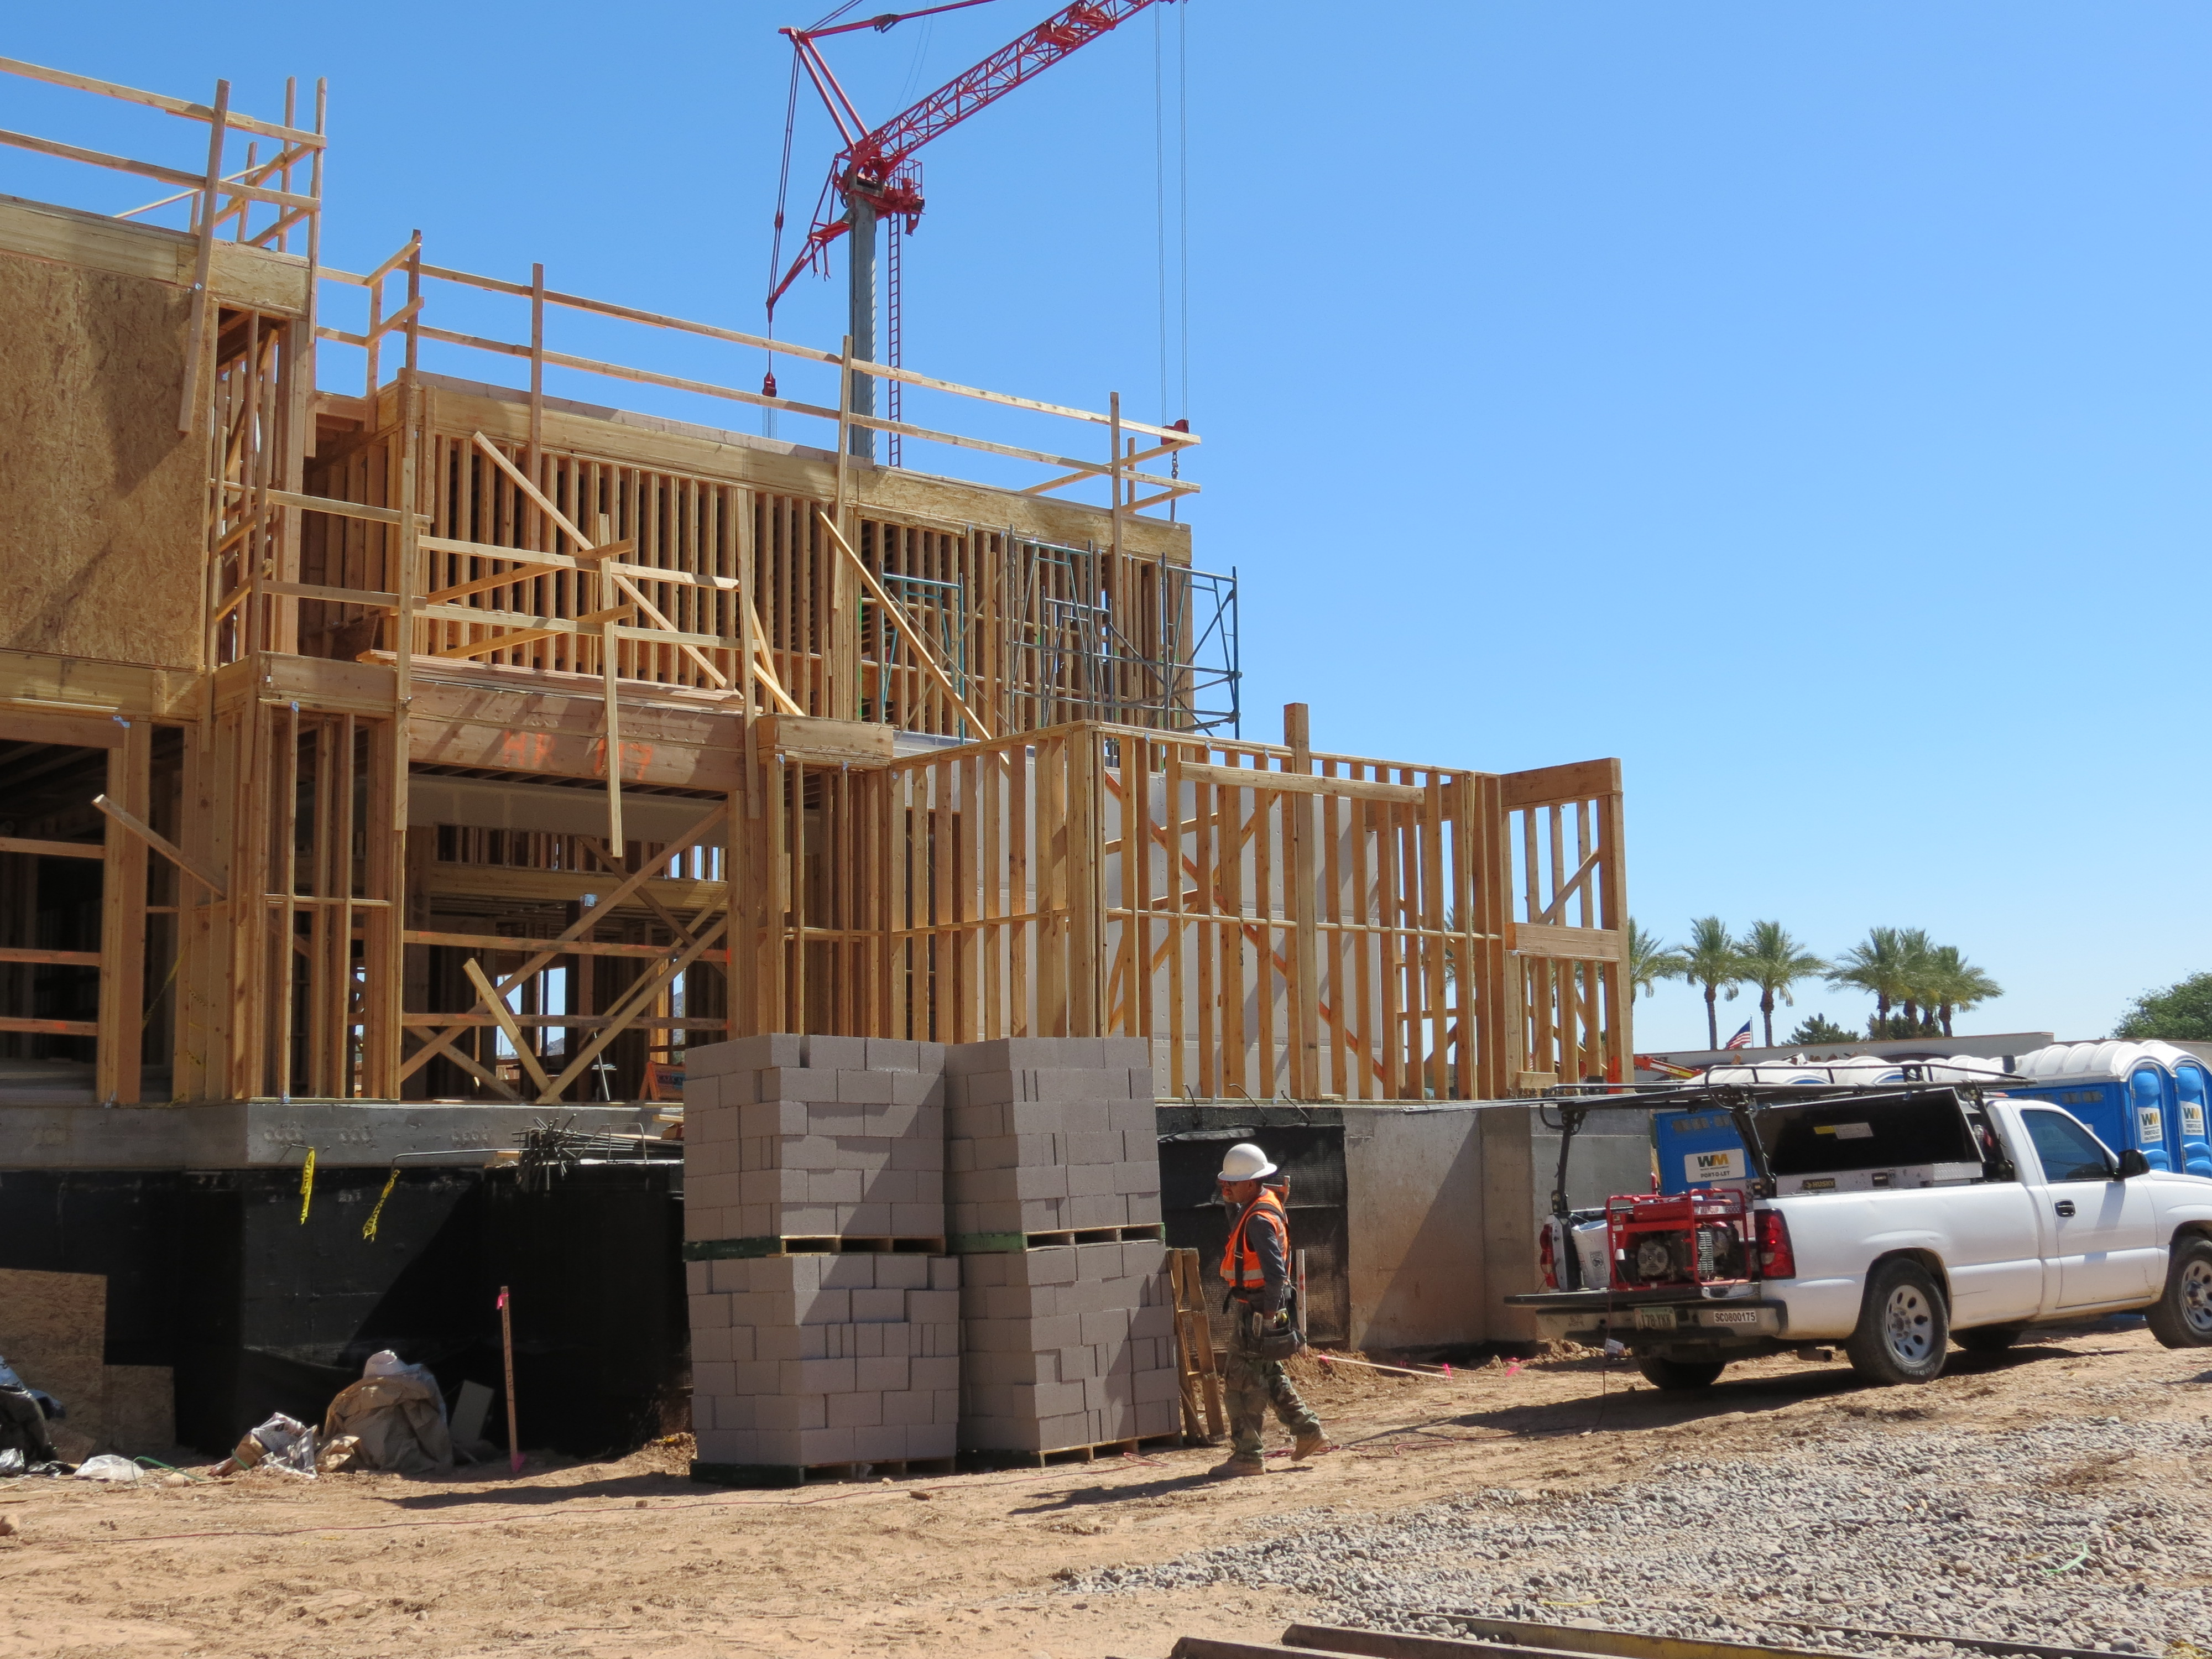 New apartment construction in Phoenix